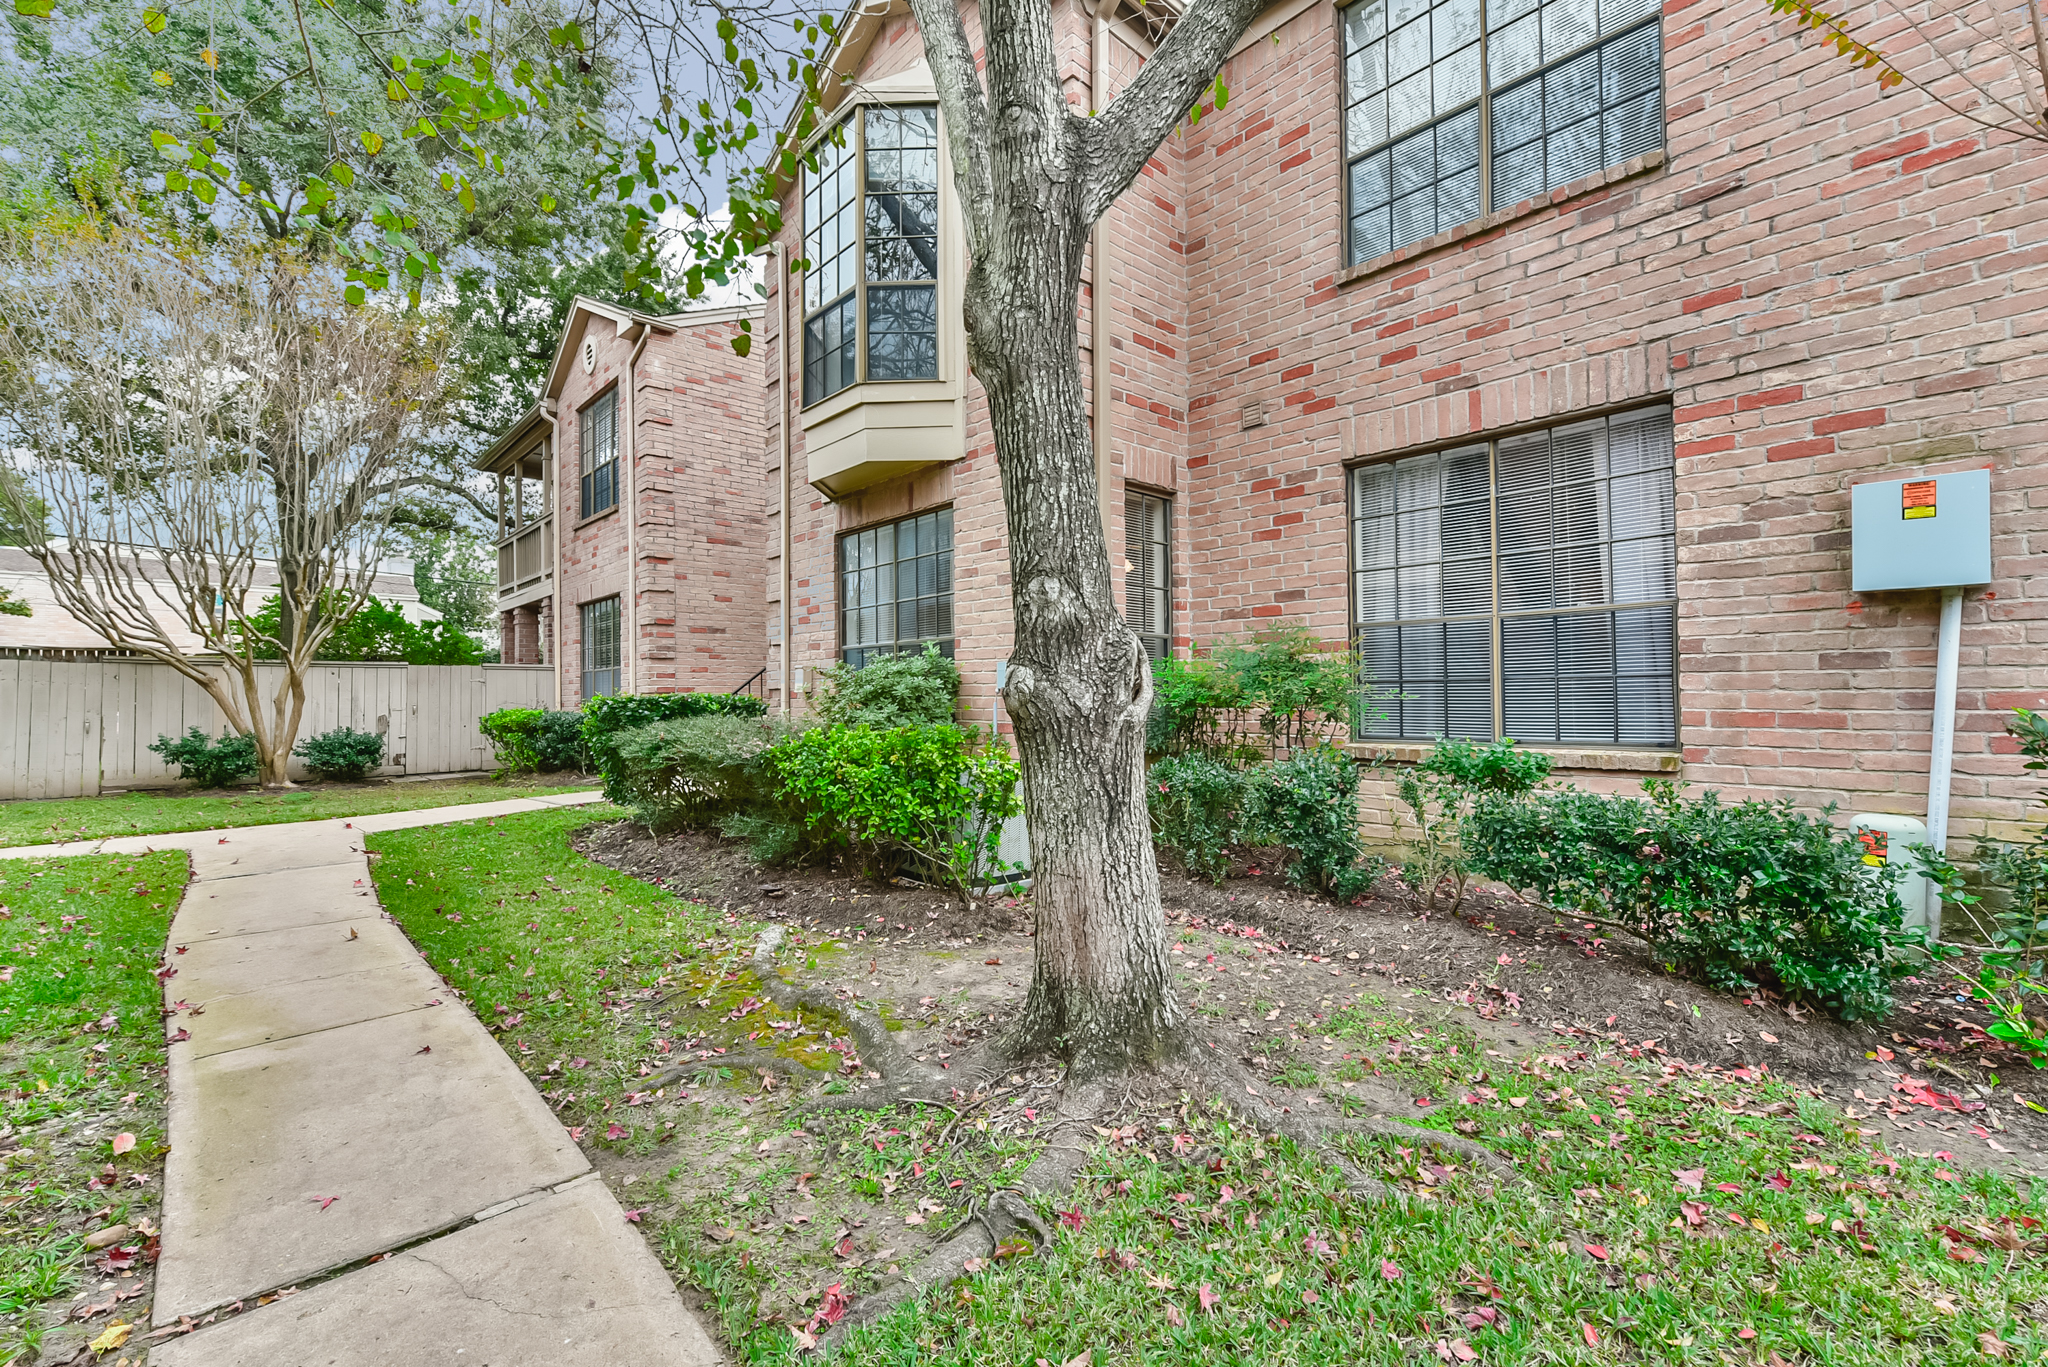 Braeswood Park Medical Center Condo for Sale